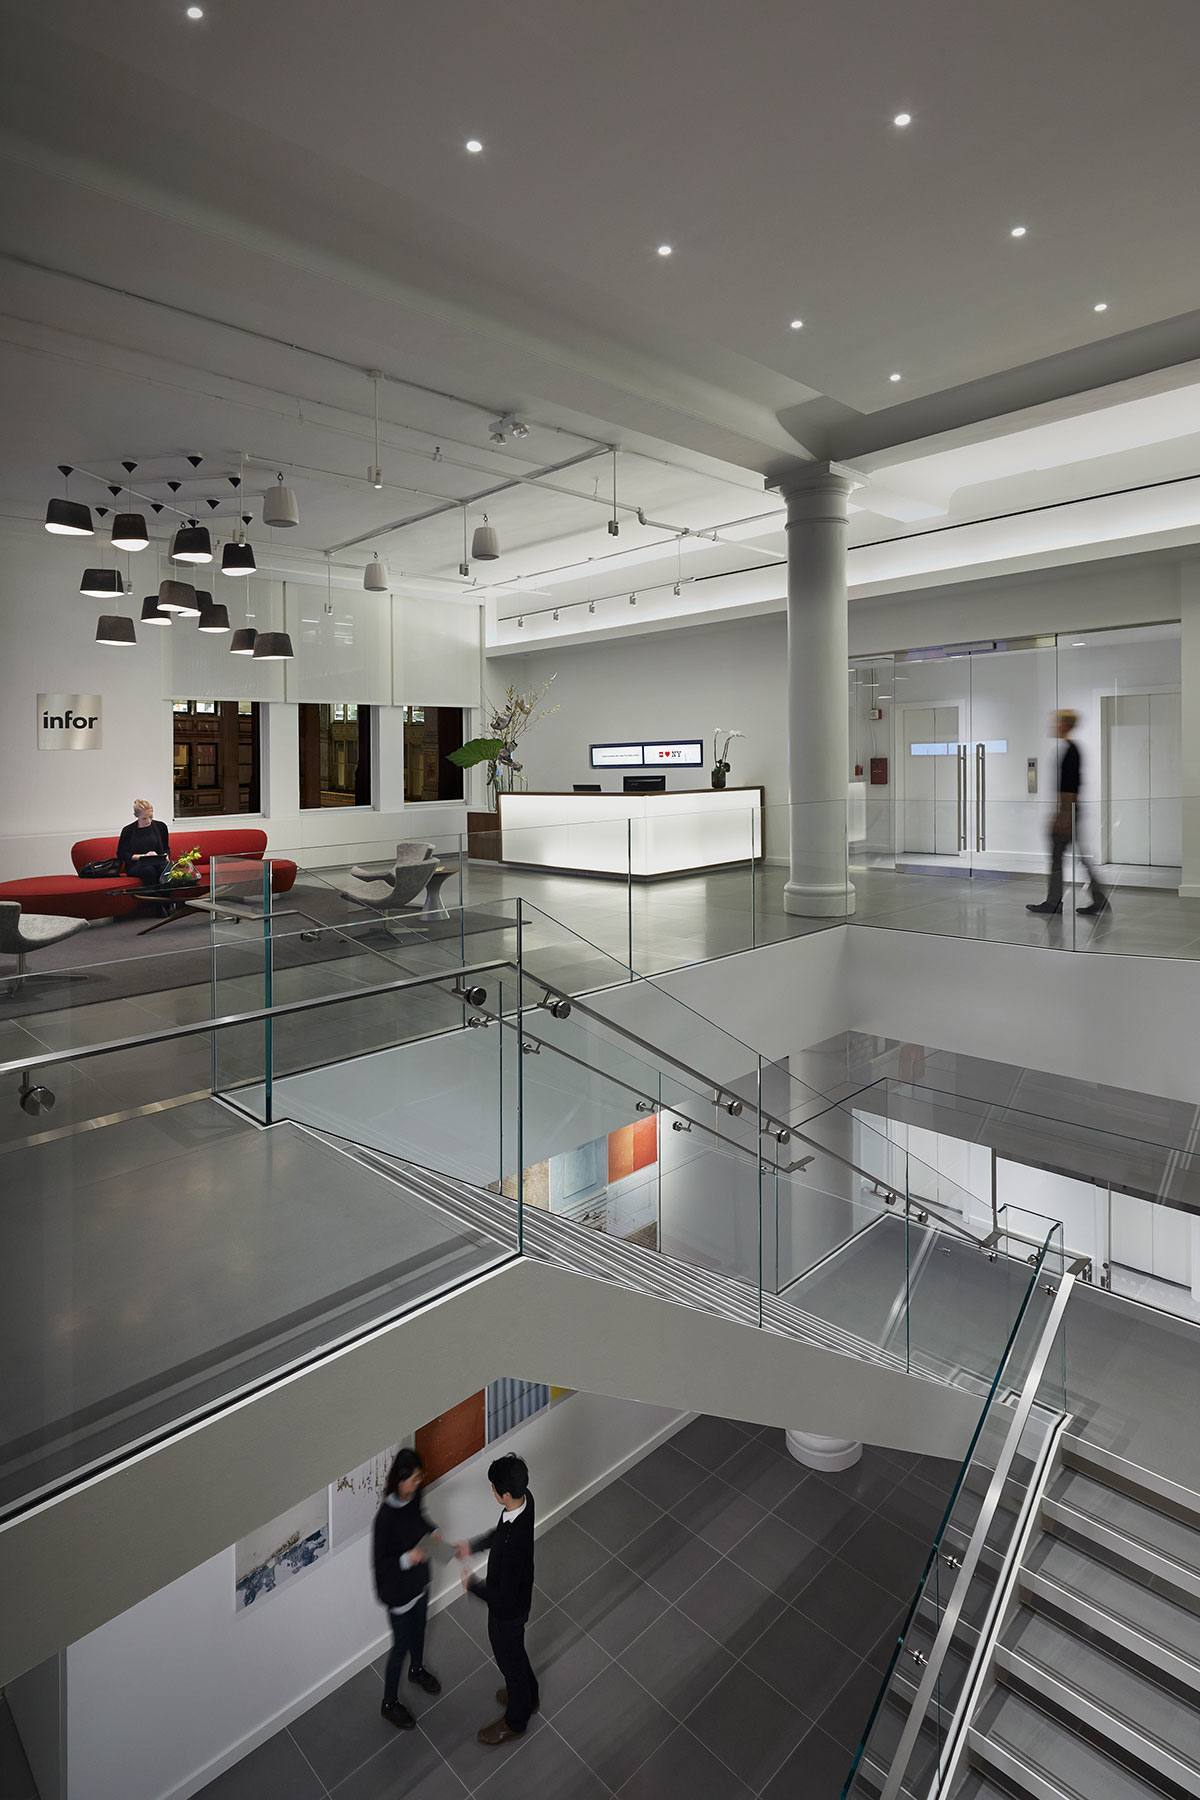 infor-nyc-office-2